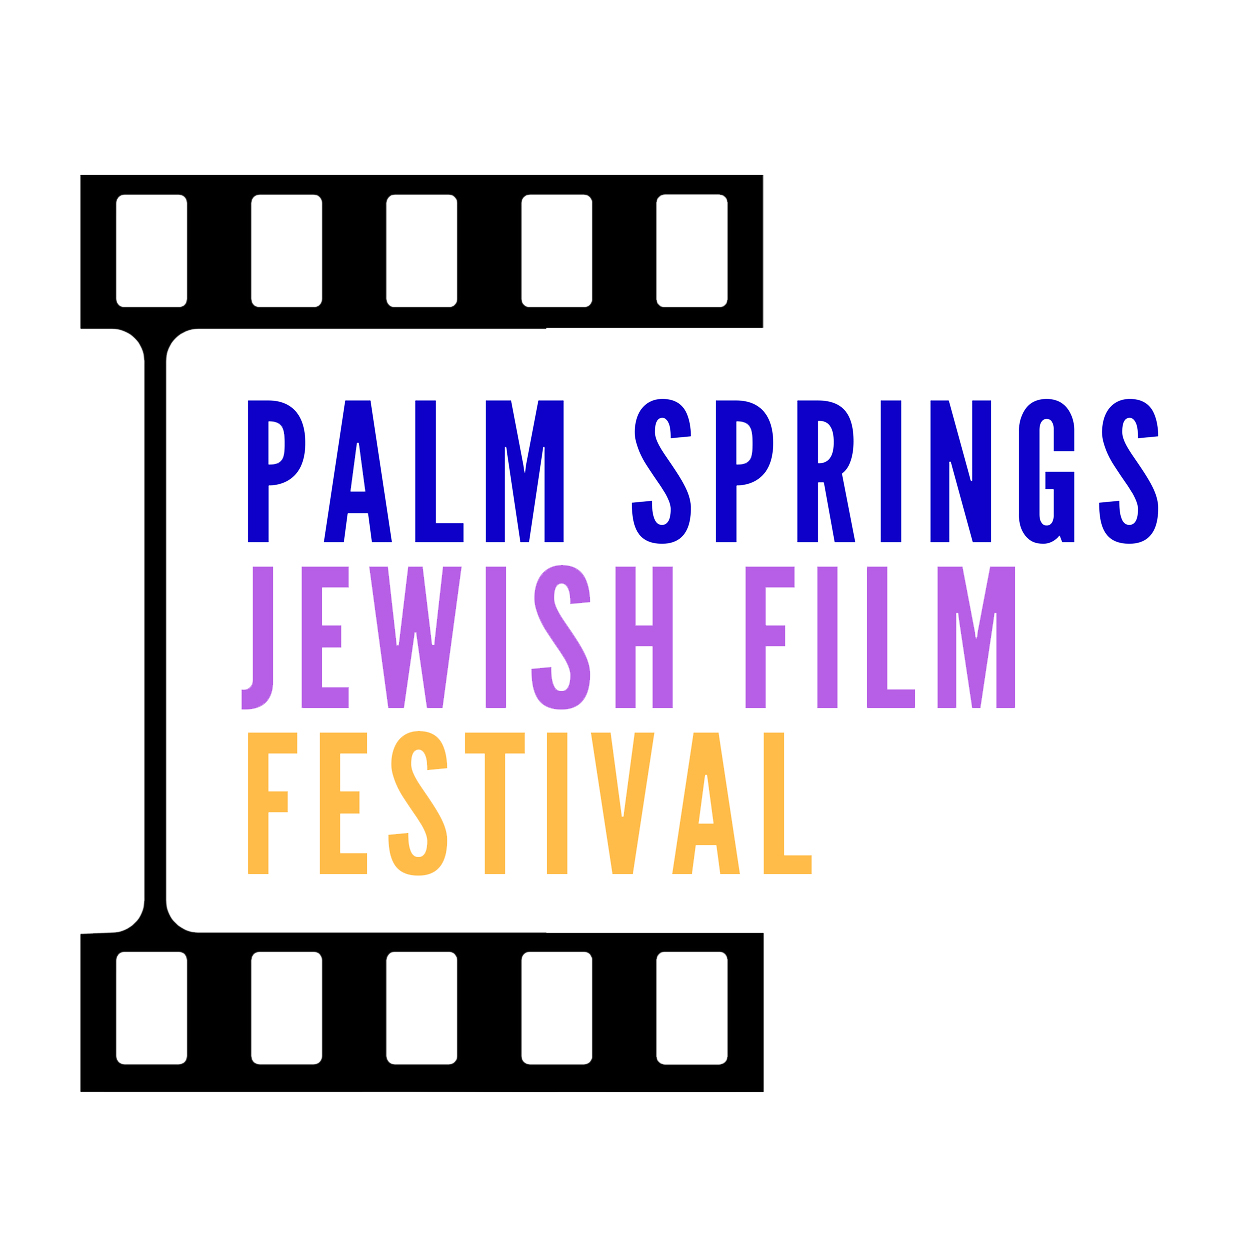 Palm Springs Jewish Film Festival